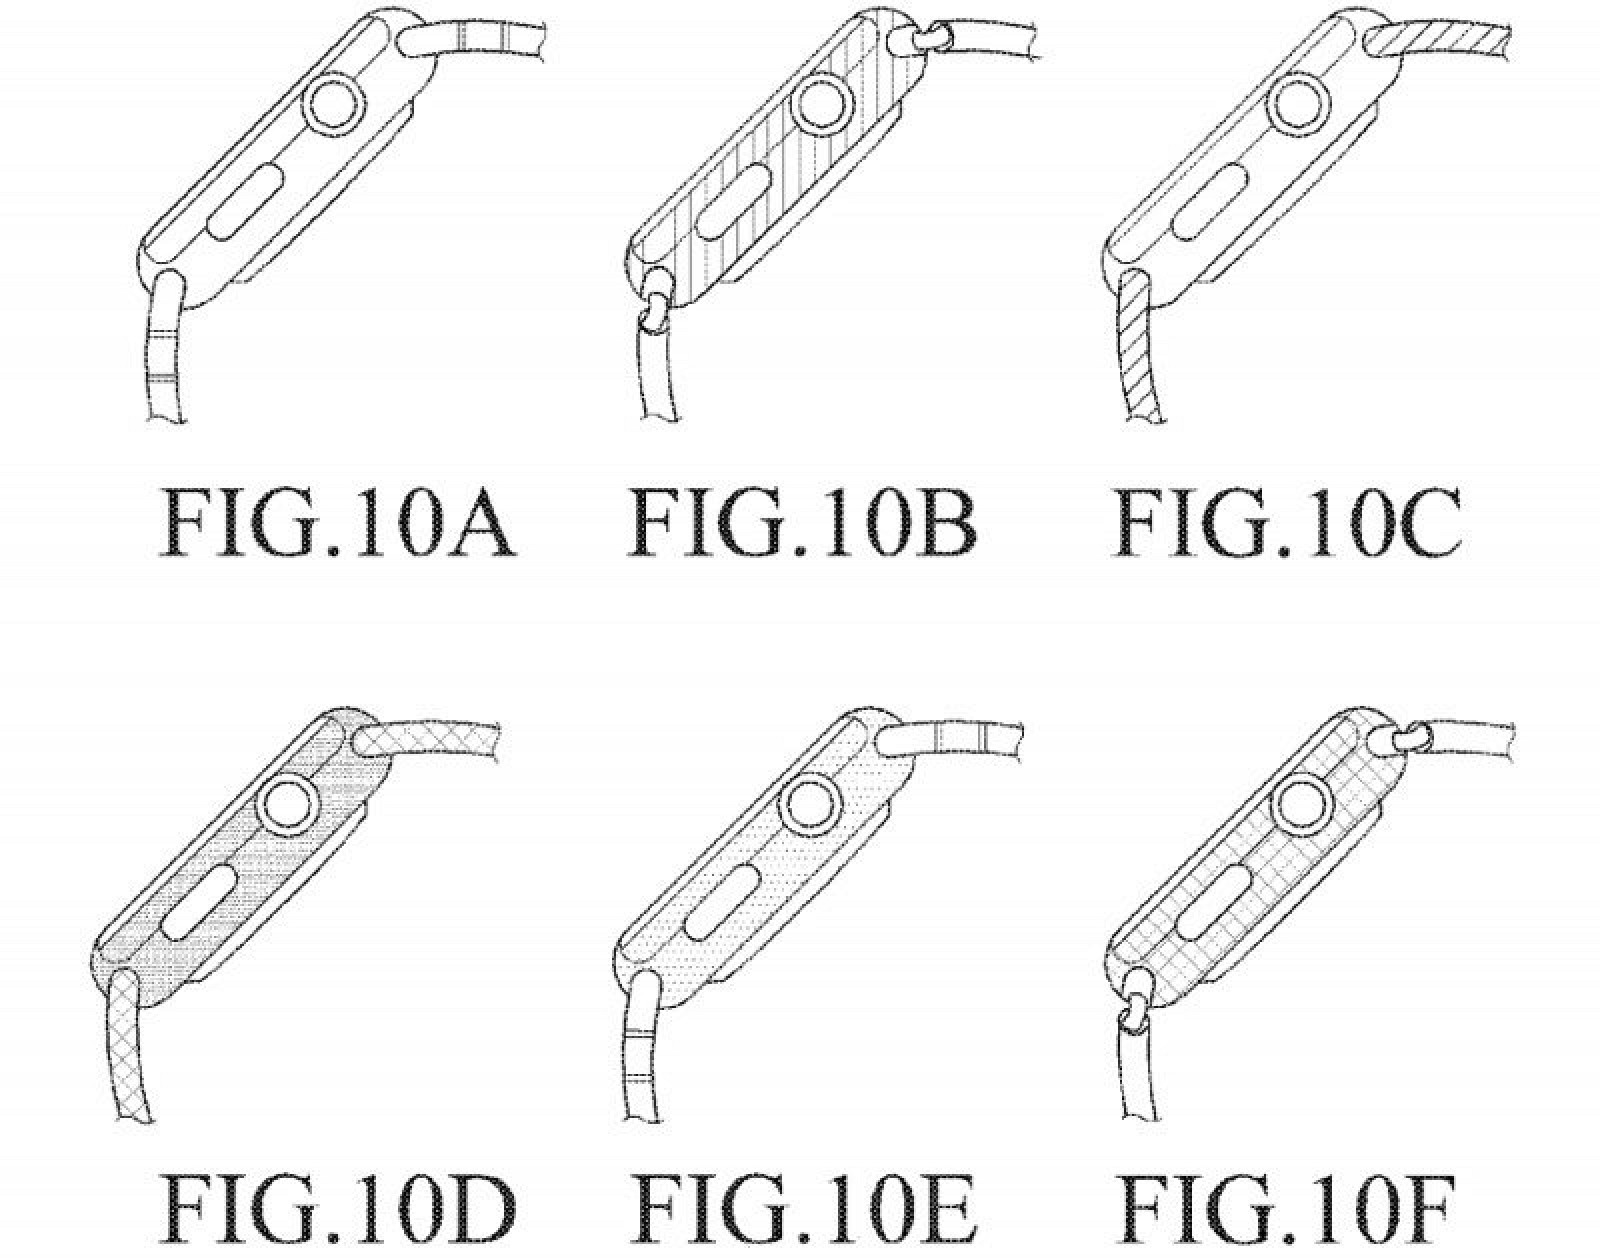 Recent Samsung Patent Filing Includes Images of Apple